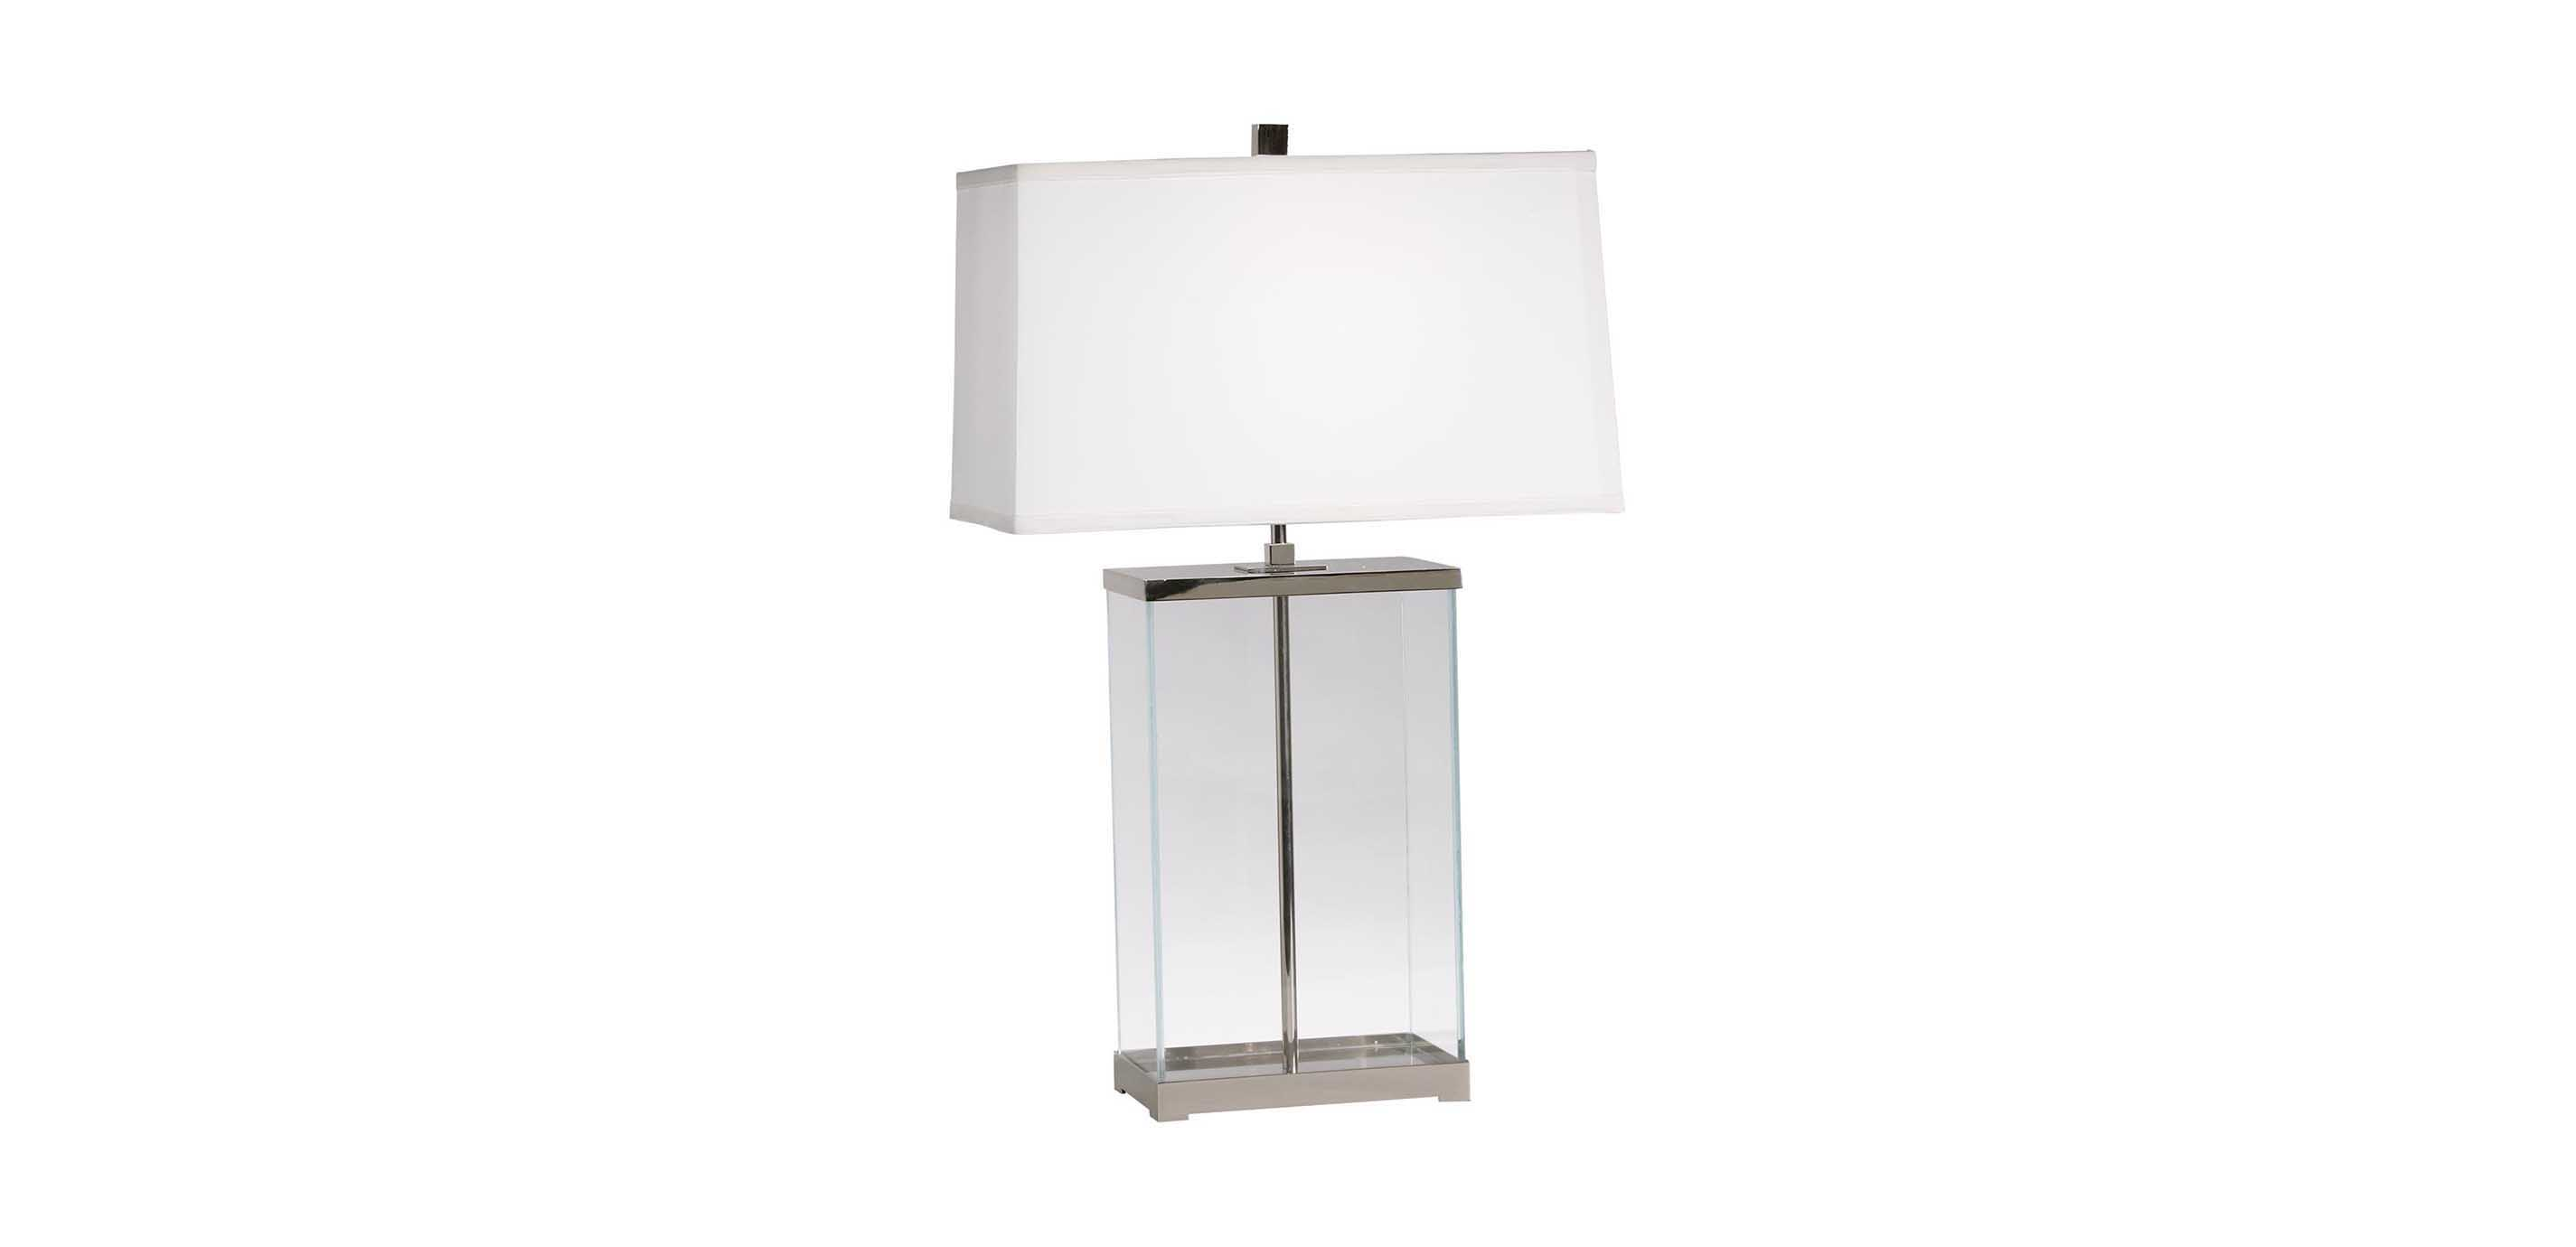 Images Rectangular Glass Table Lamp     large gray. Rectangular Glass Table Lamp   TABLE LAMPS